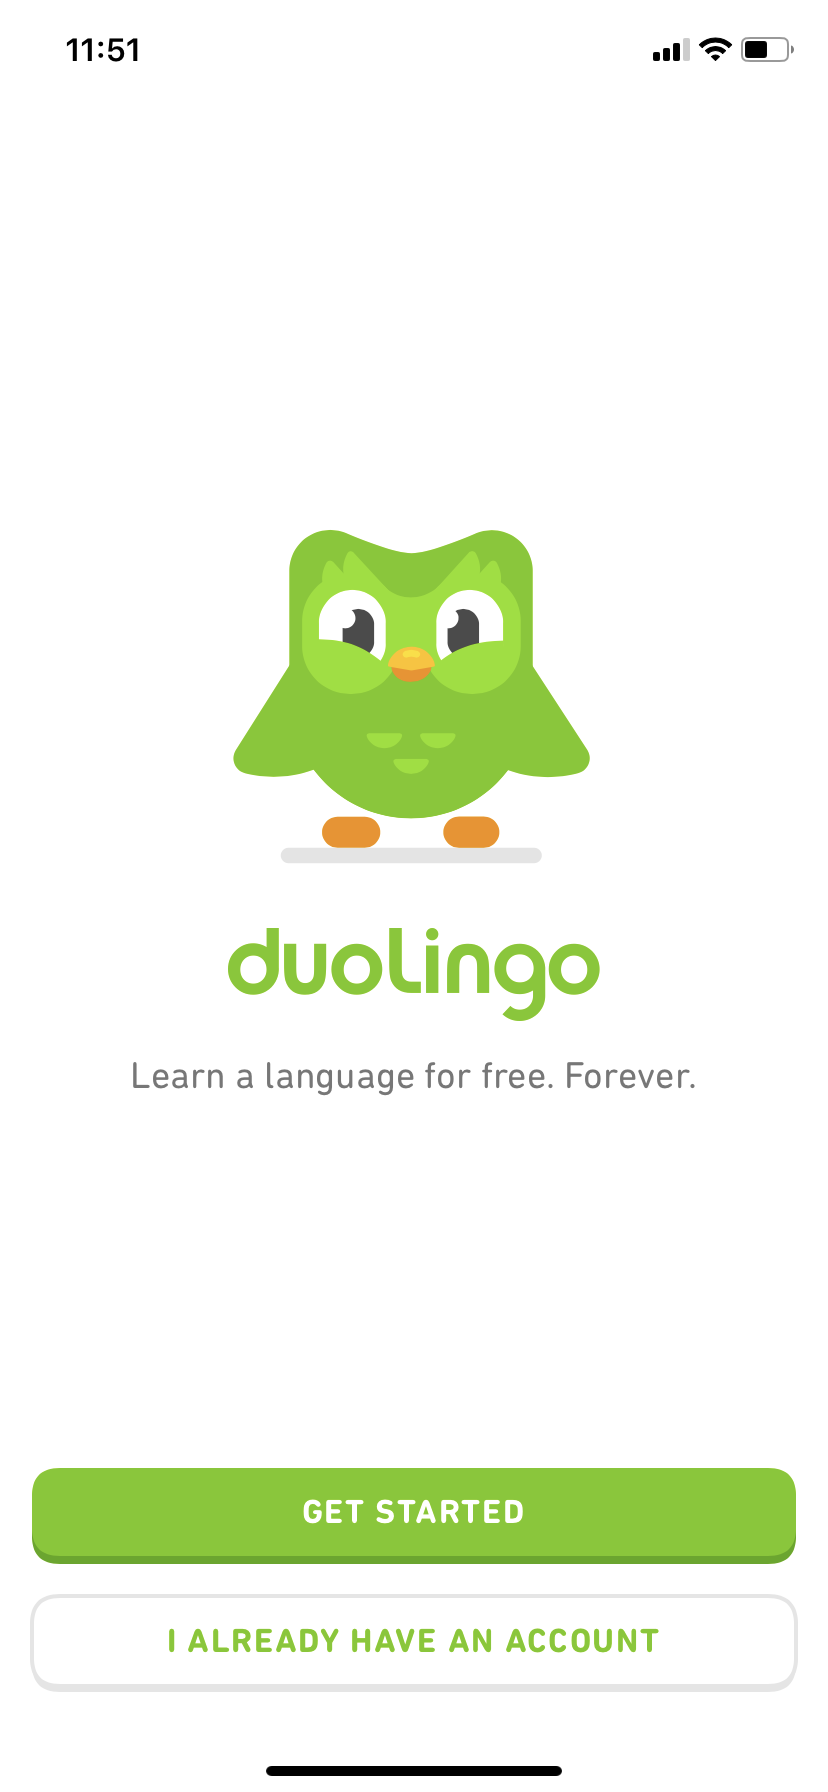 screenshot image of duolingo mobile app's user onboarding experience featuring the duolingo mascot. this is a great example of user onboarding for mobile